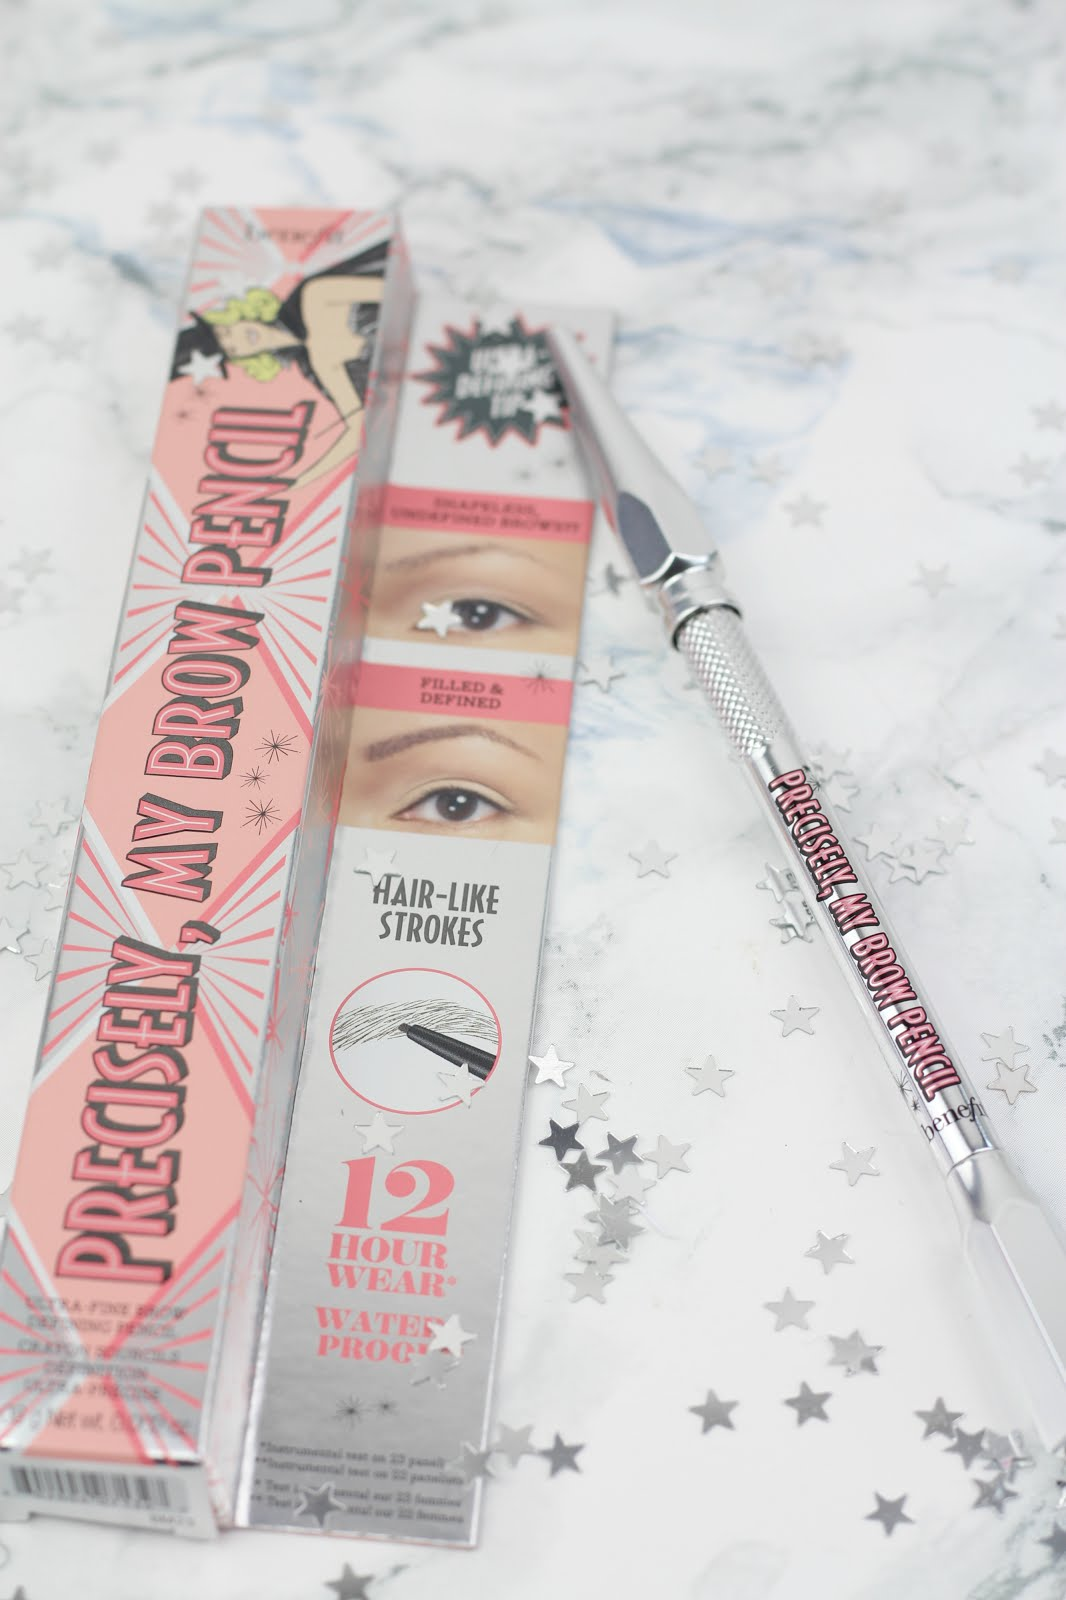 benefit, benefit cosmetics, benefit brows, benefit brow pen, benefit brow pencil, benefit precisely my brow, benefit precisely  precisely my brow pen,  precisely my brow pencil, benefit brows, benefit brow pen, benefit brow pencil, benefit precisely my brow review, benefit precisely my brow pen review,  precisely my brow pencil review, nelly ray, nelly ray blog, beautyblogger, german beautyblogger, instagrammer